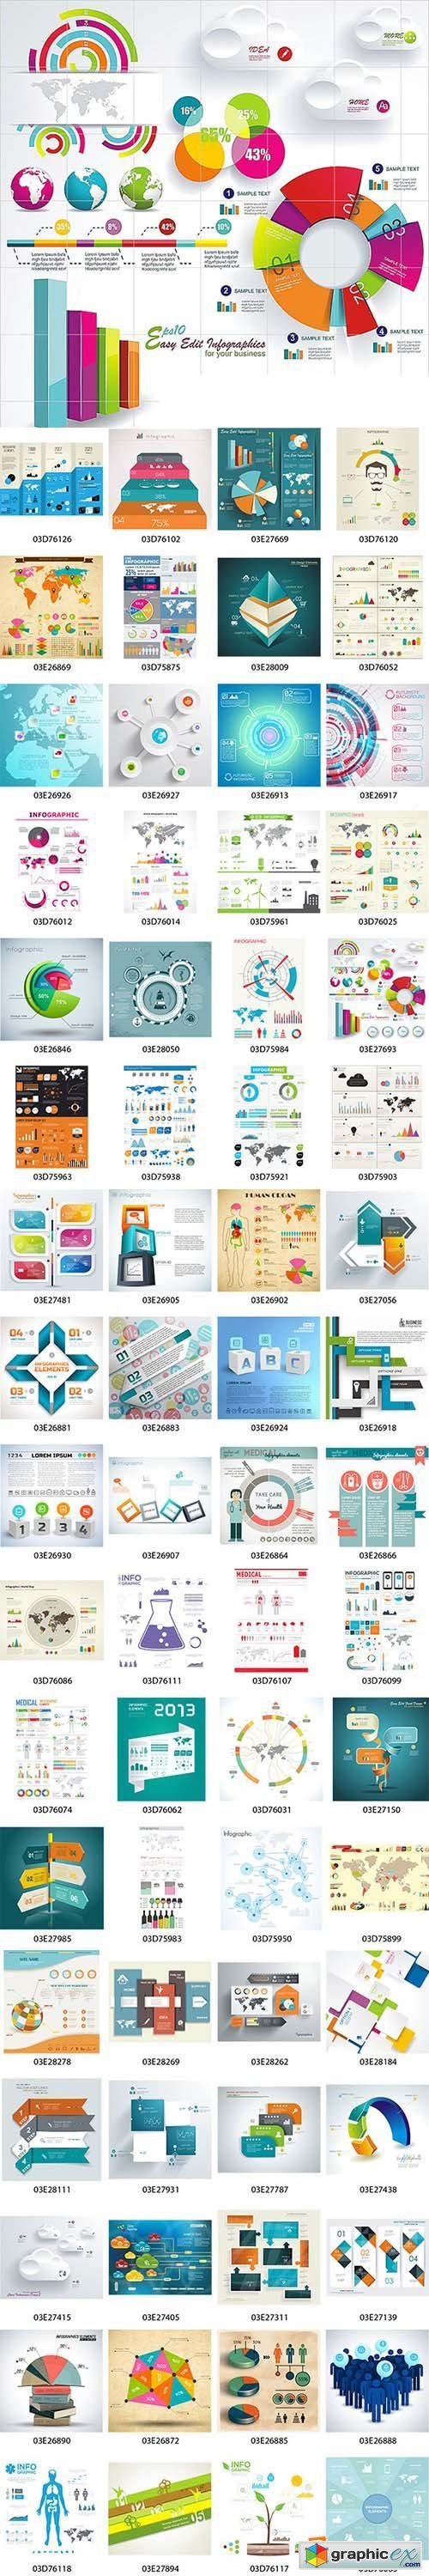 100 Premium Infographics V2 from Ingimage